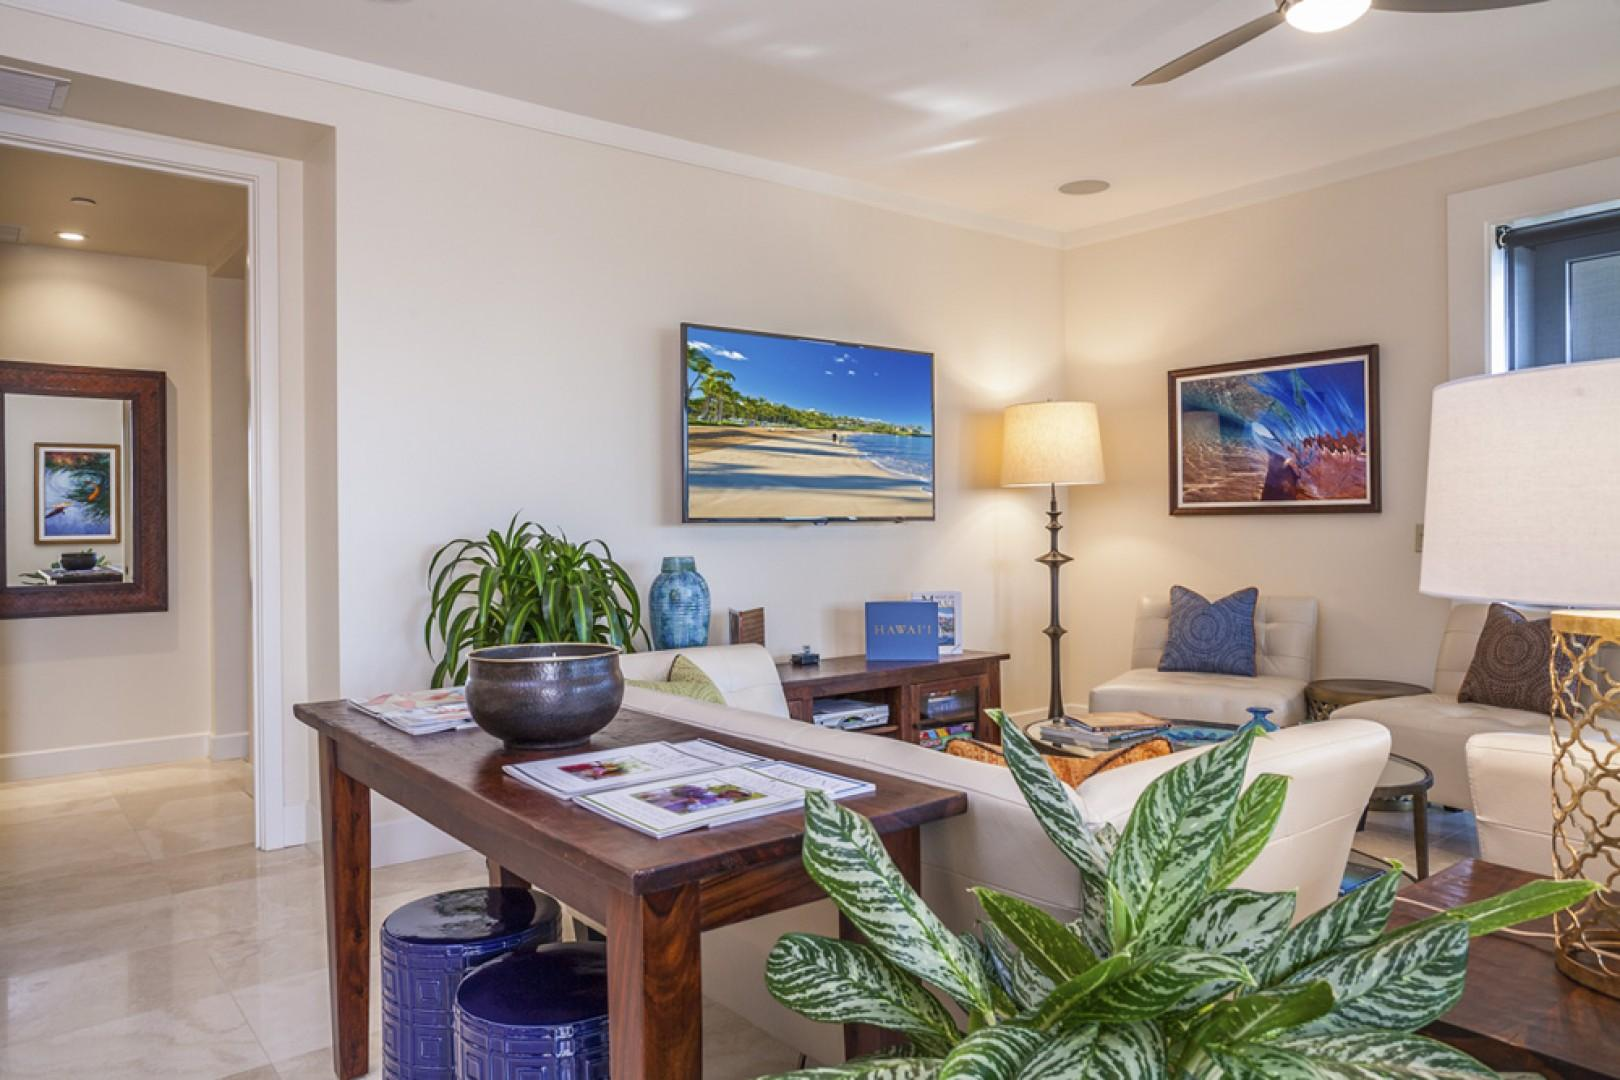 Azure Azul features beautiful decor, top-quality electronics, and other luxurious details.